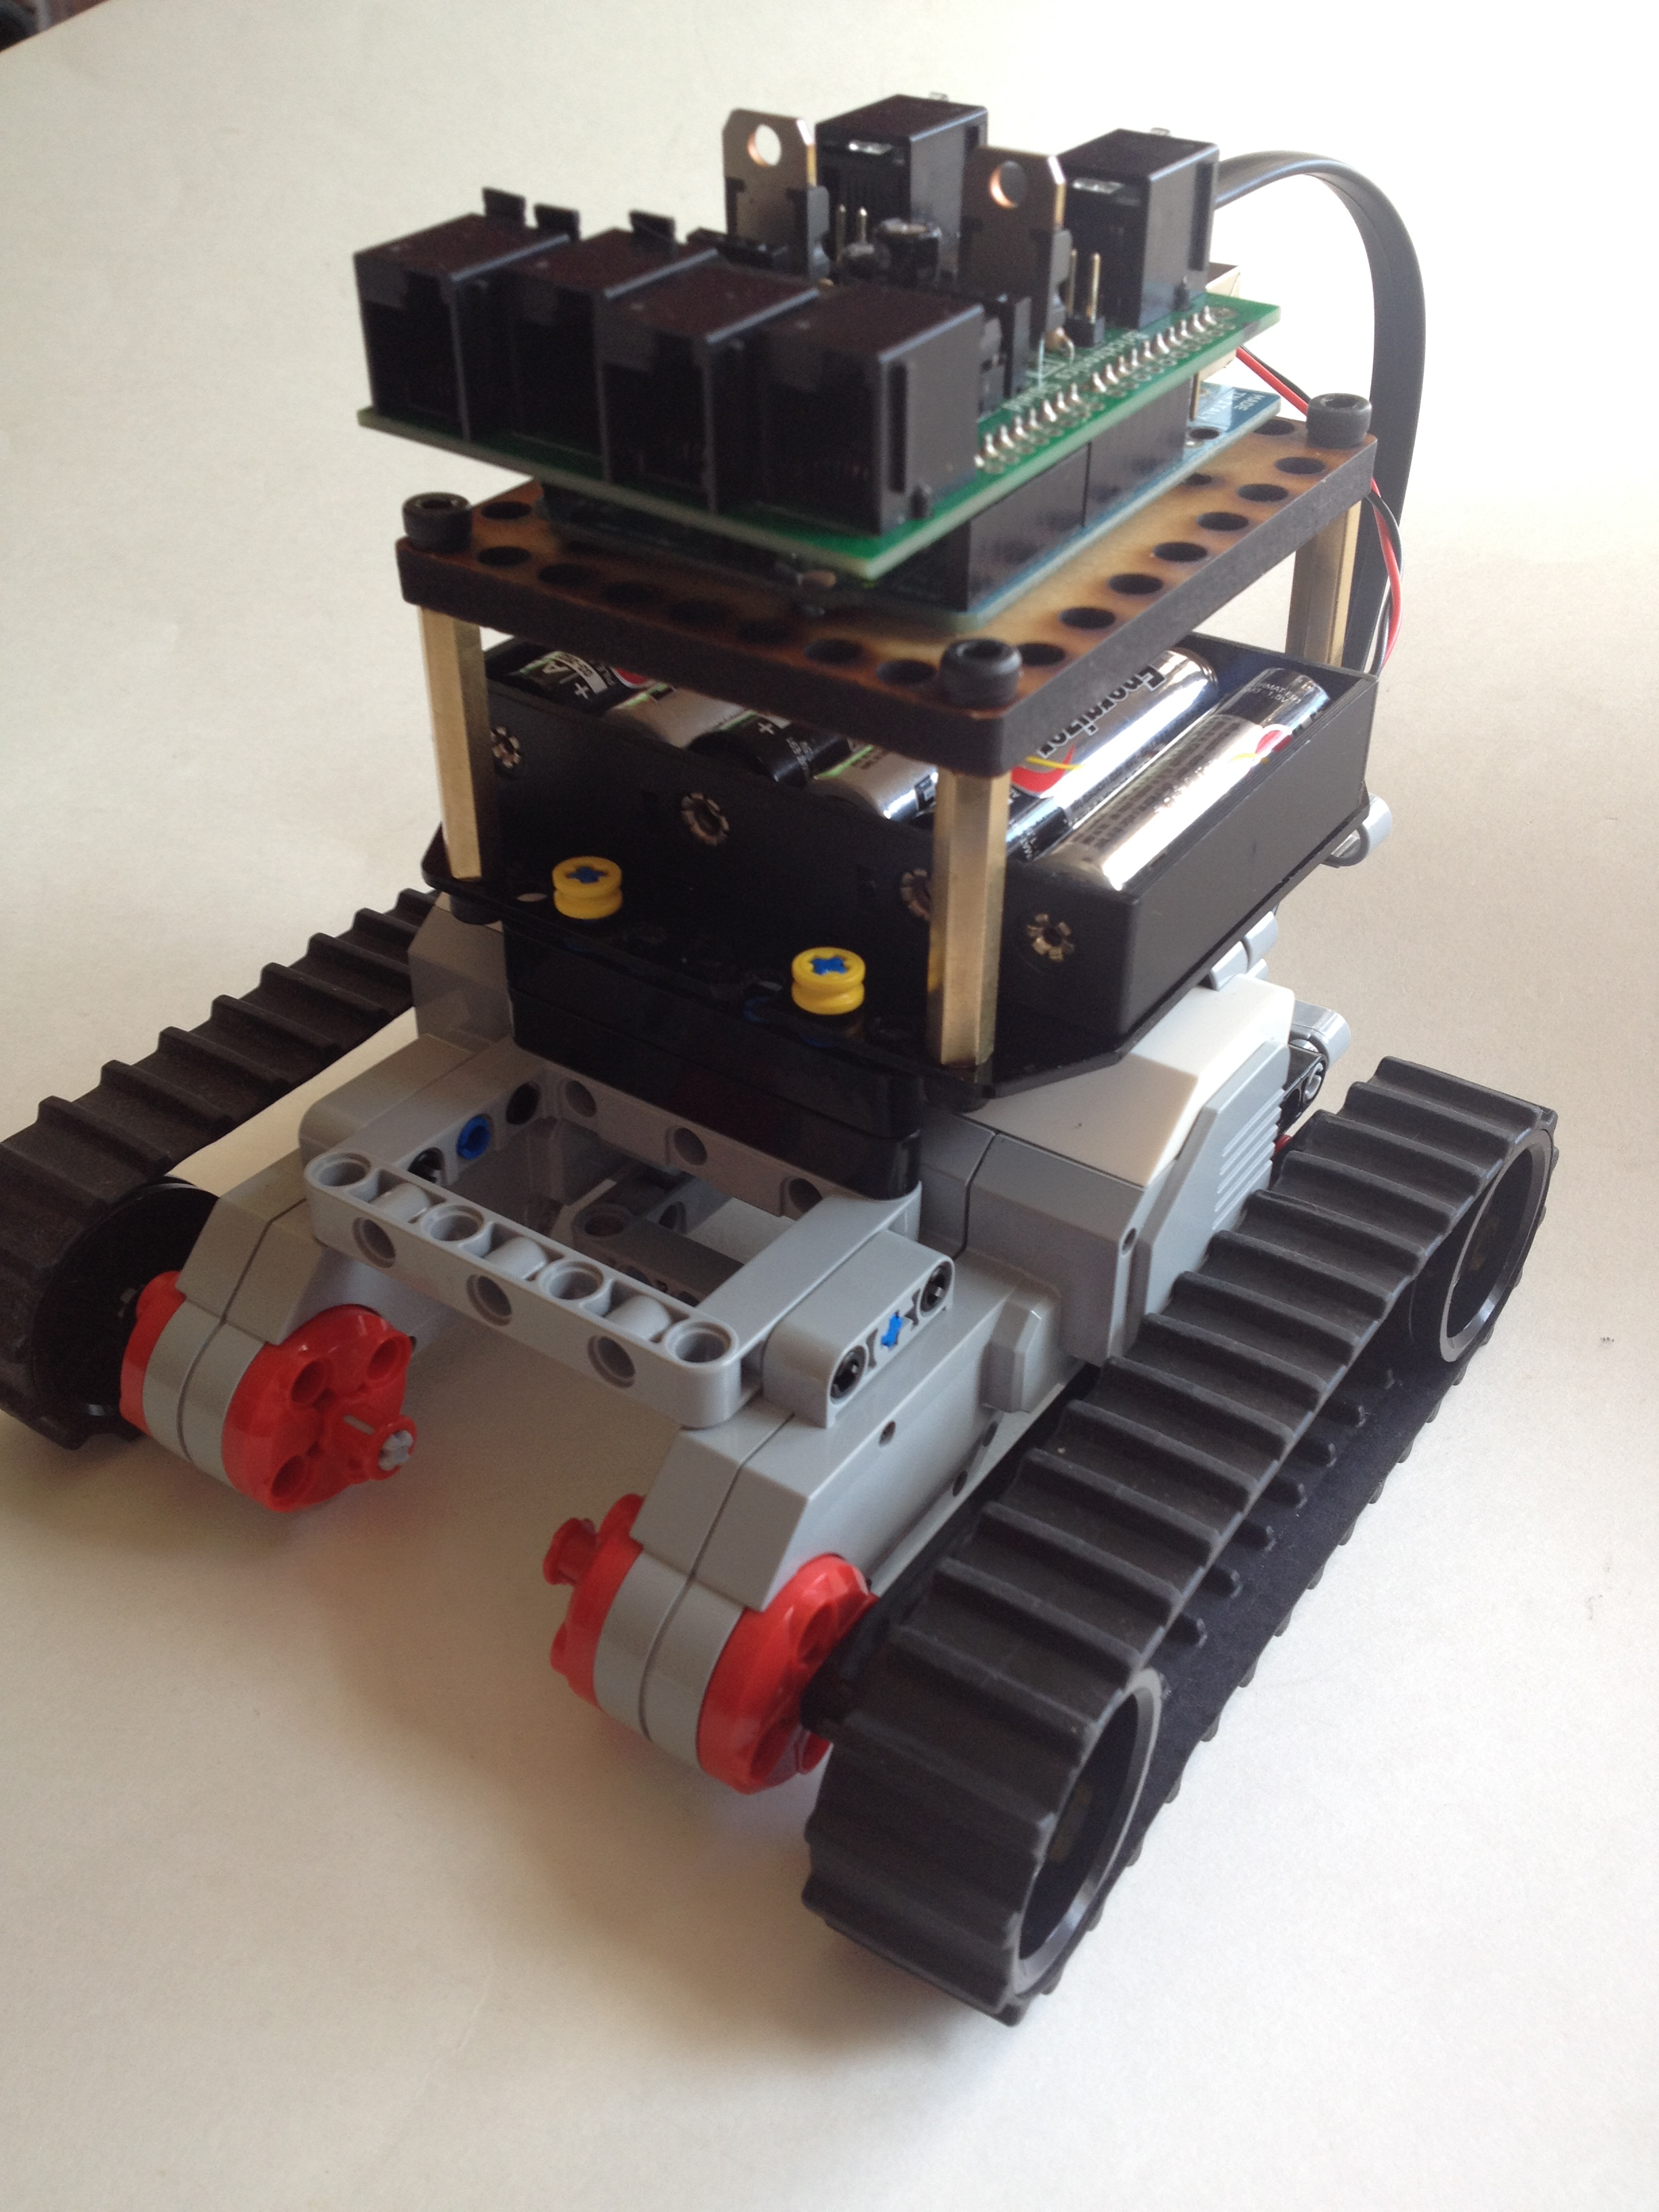 Bricktronics Mini Tank